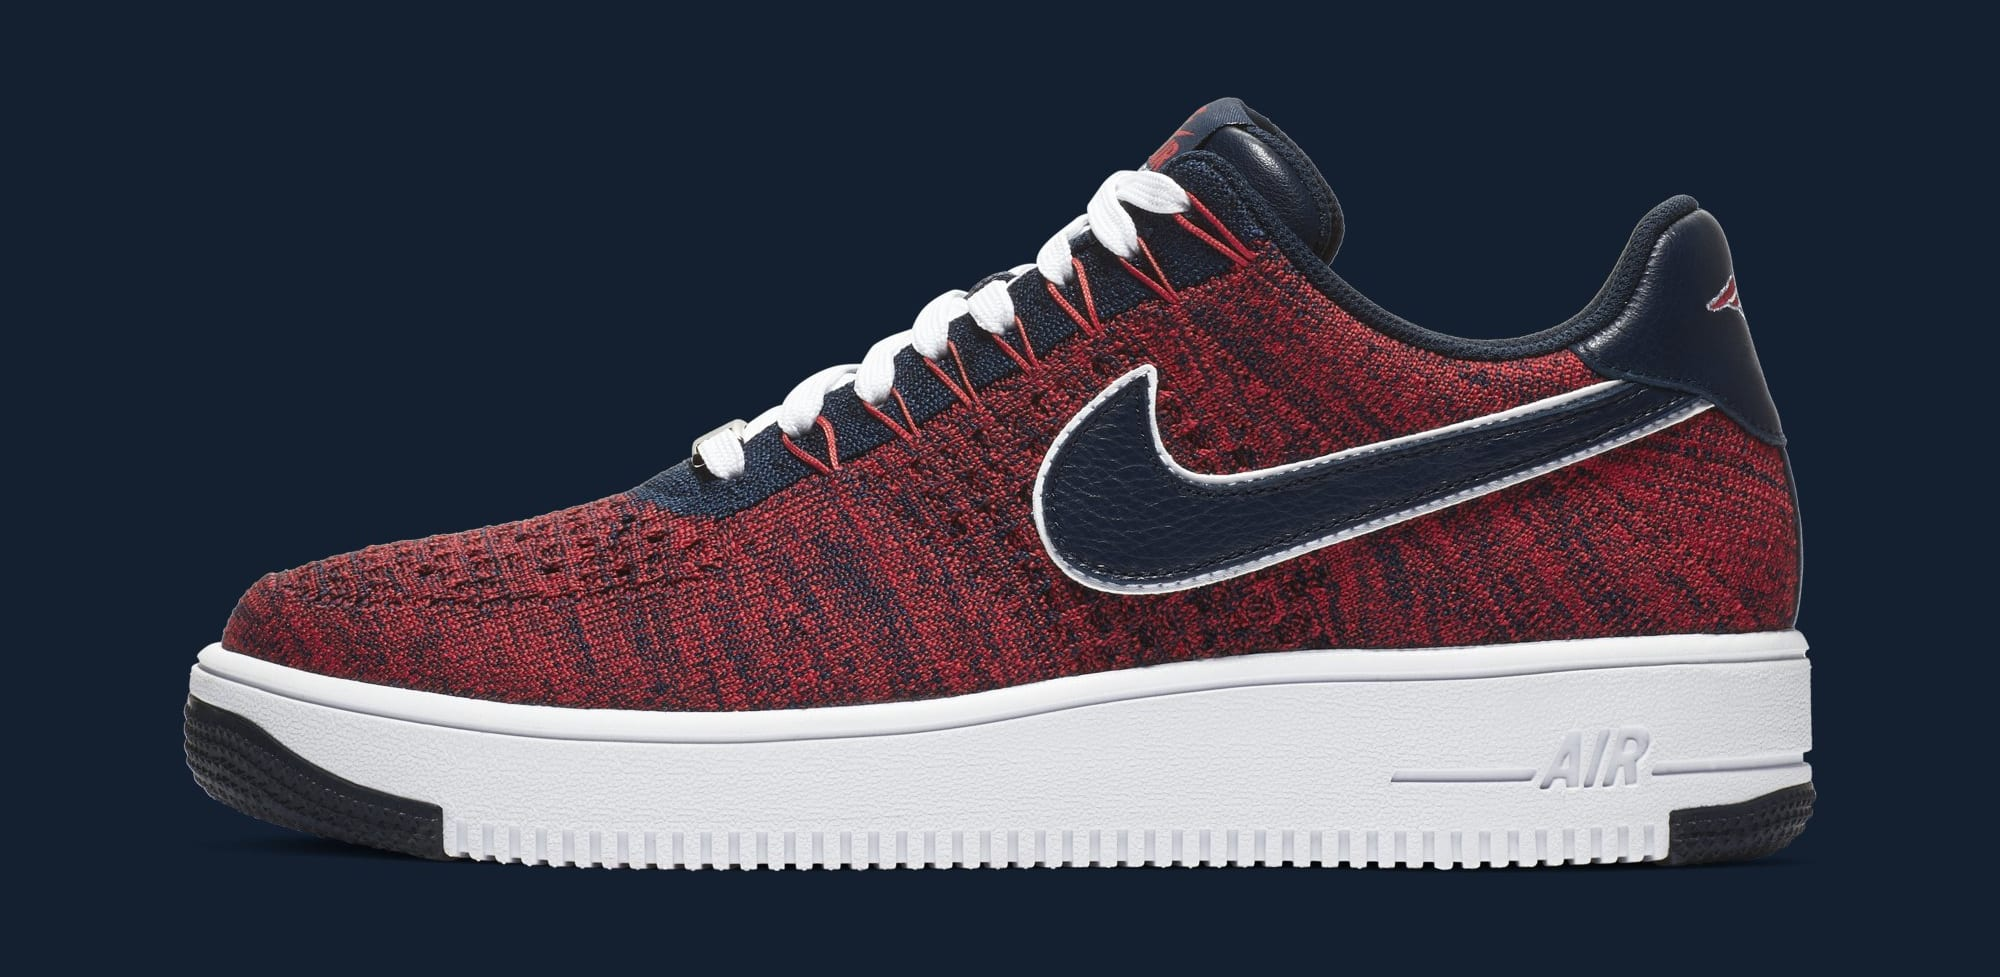 d1d23c31a7 ... sweden nike air force 1 ultra flyknit low rkk ah8425 600 lateral b0cfb  d36c7